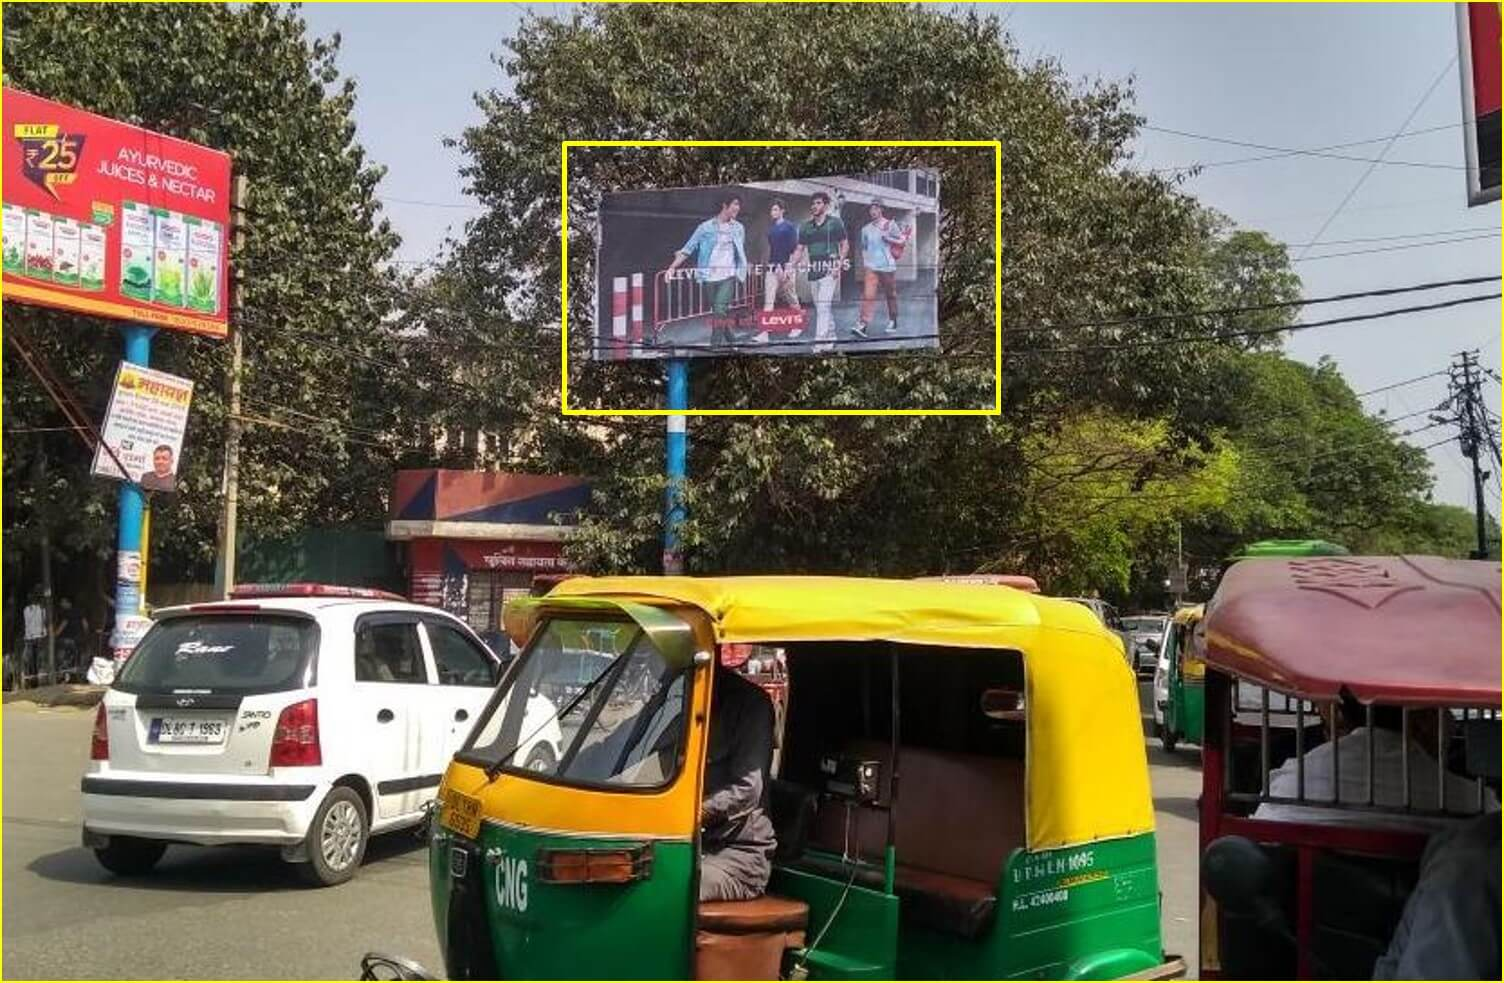 Option No.1 Outdoor Unipole Advertising at Kamla Nagar Main Market (Near Bindals) FTC from Shakti Nagar to Bunglow Road